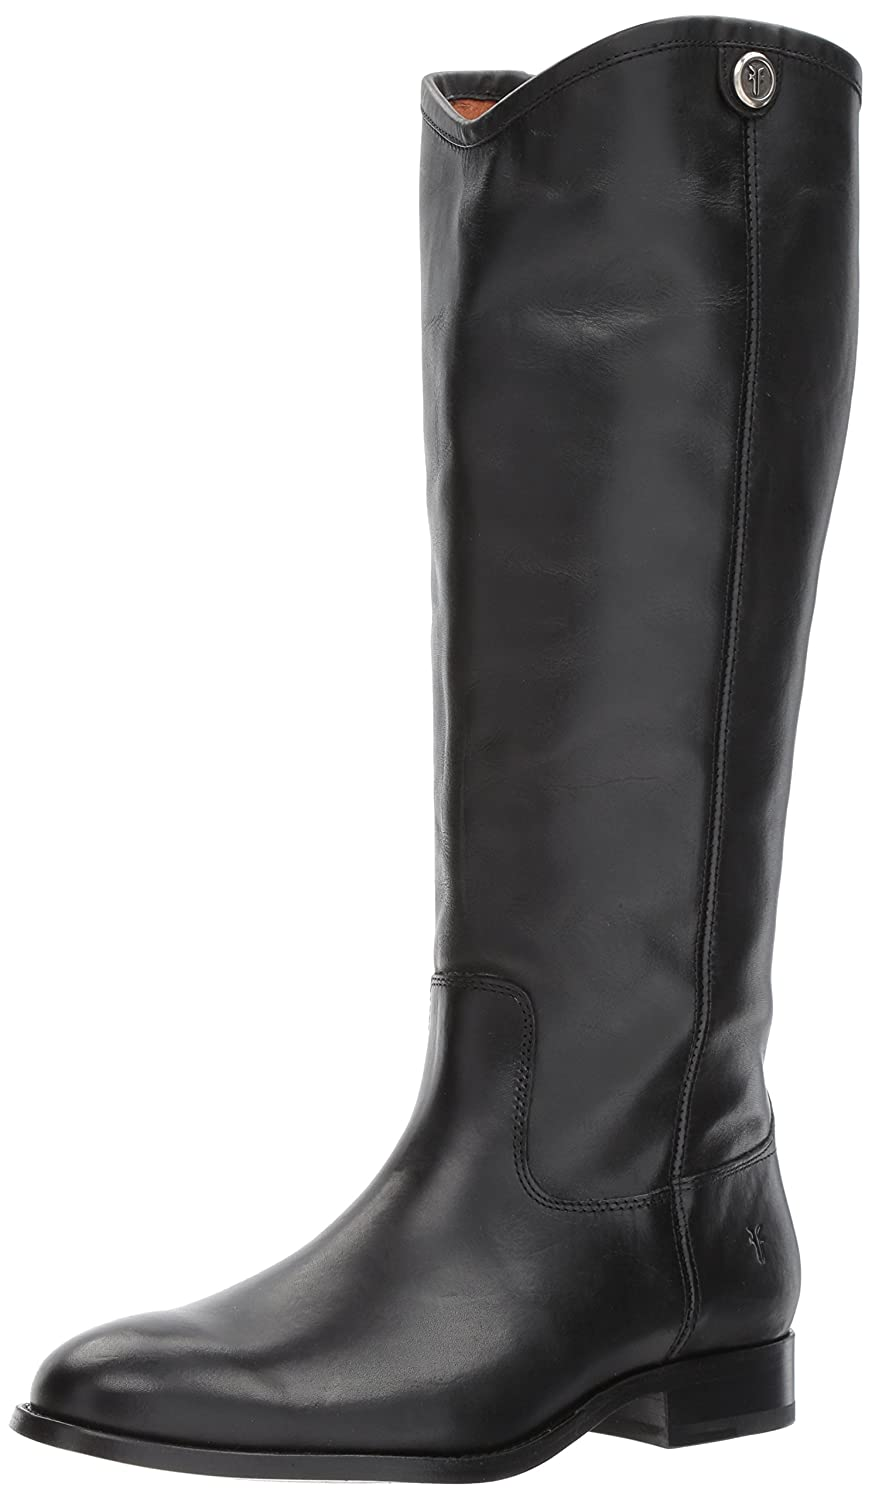 FRYE Women's Melissa Button 2 Extended Calf Riding Boot B06VSJVWYN 7 B(M) US|Black Extended Calf